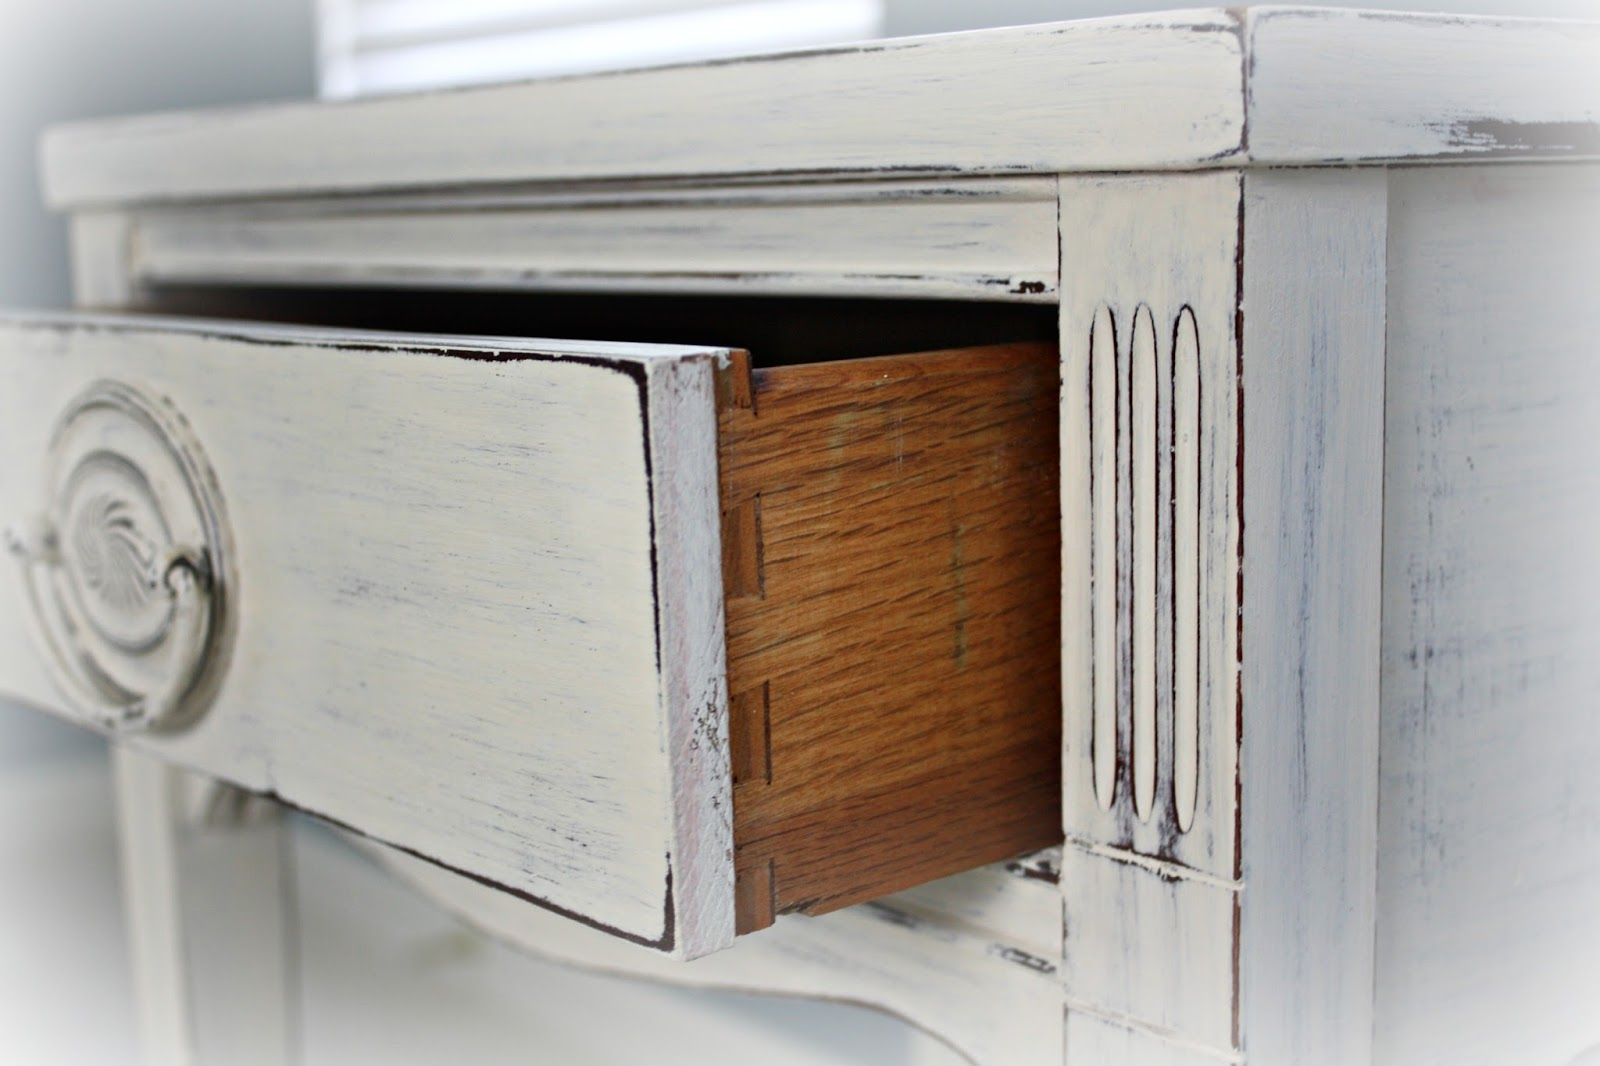 Dovetailed drawer joinery